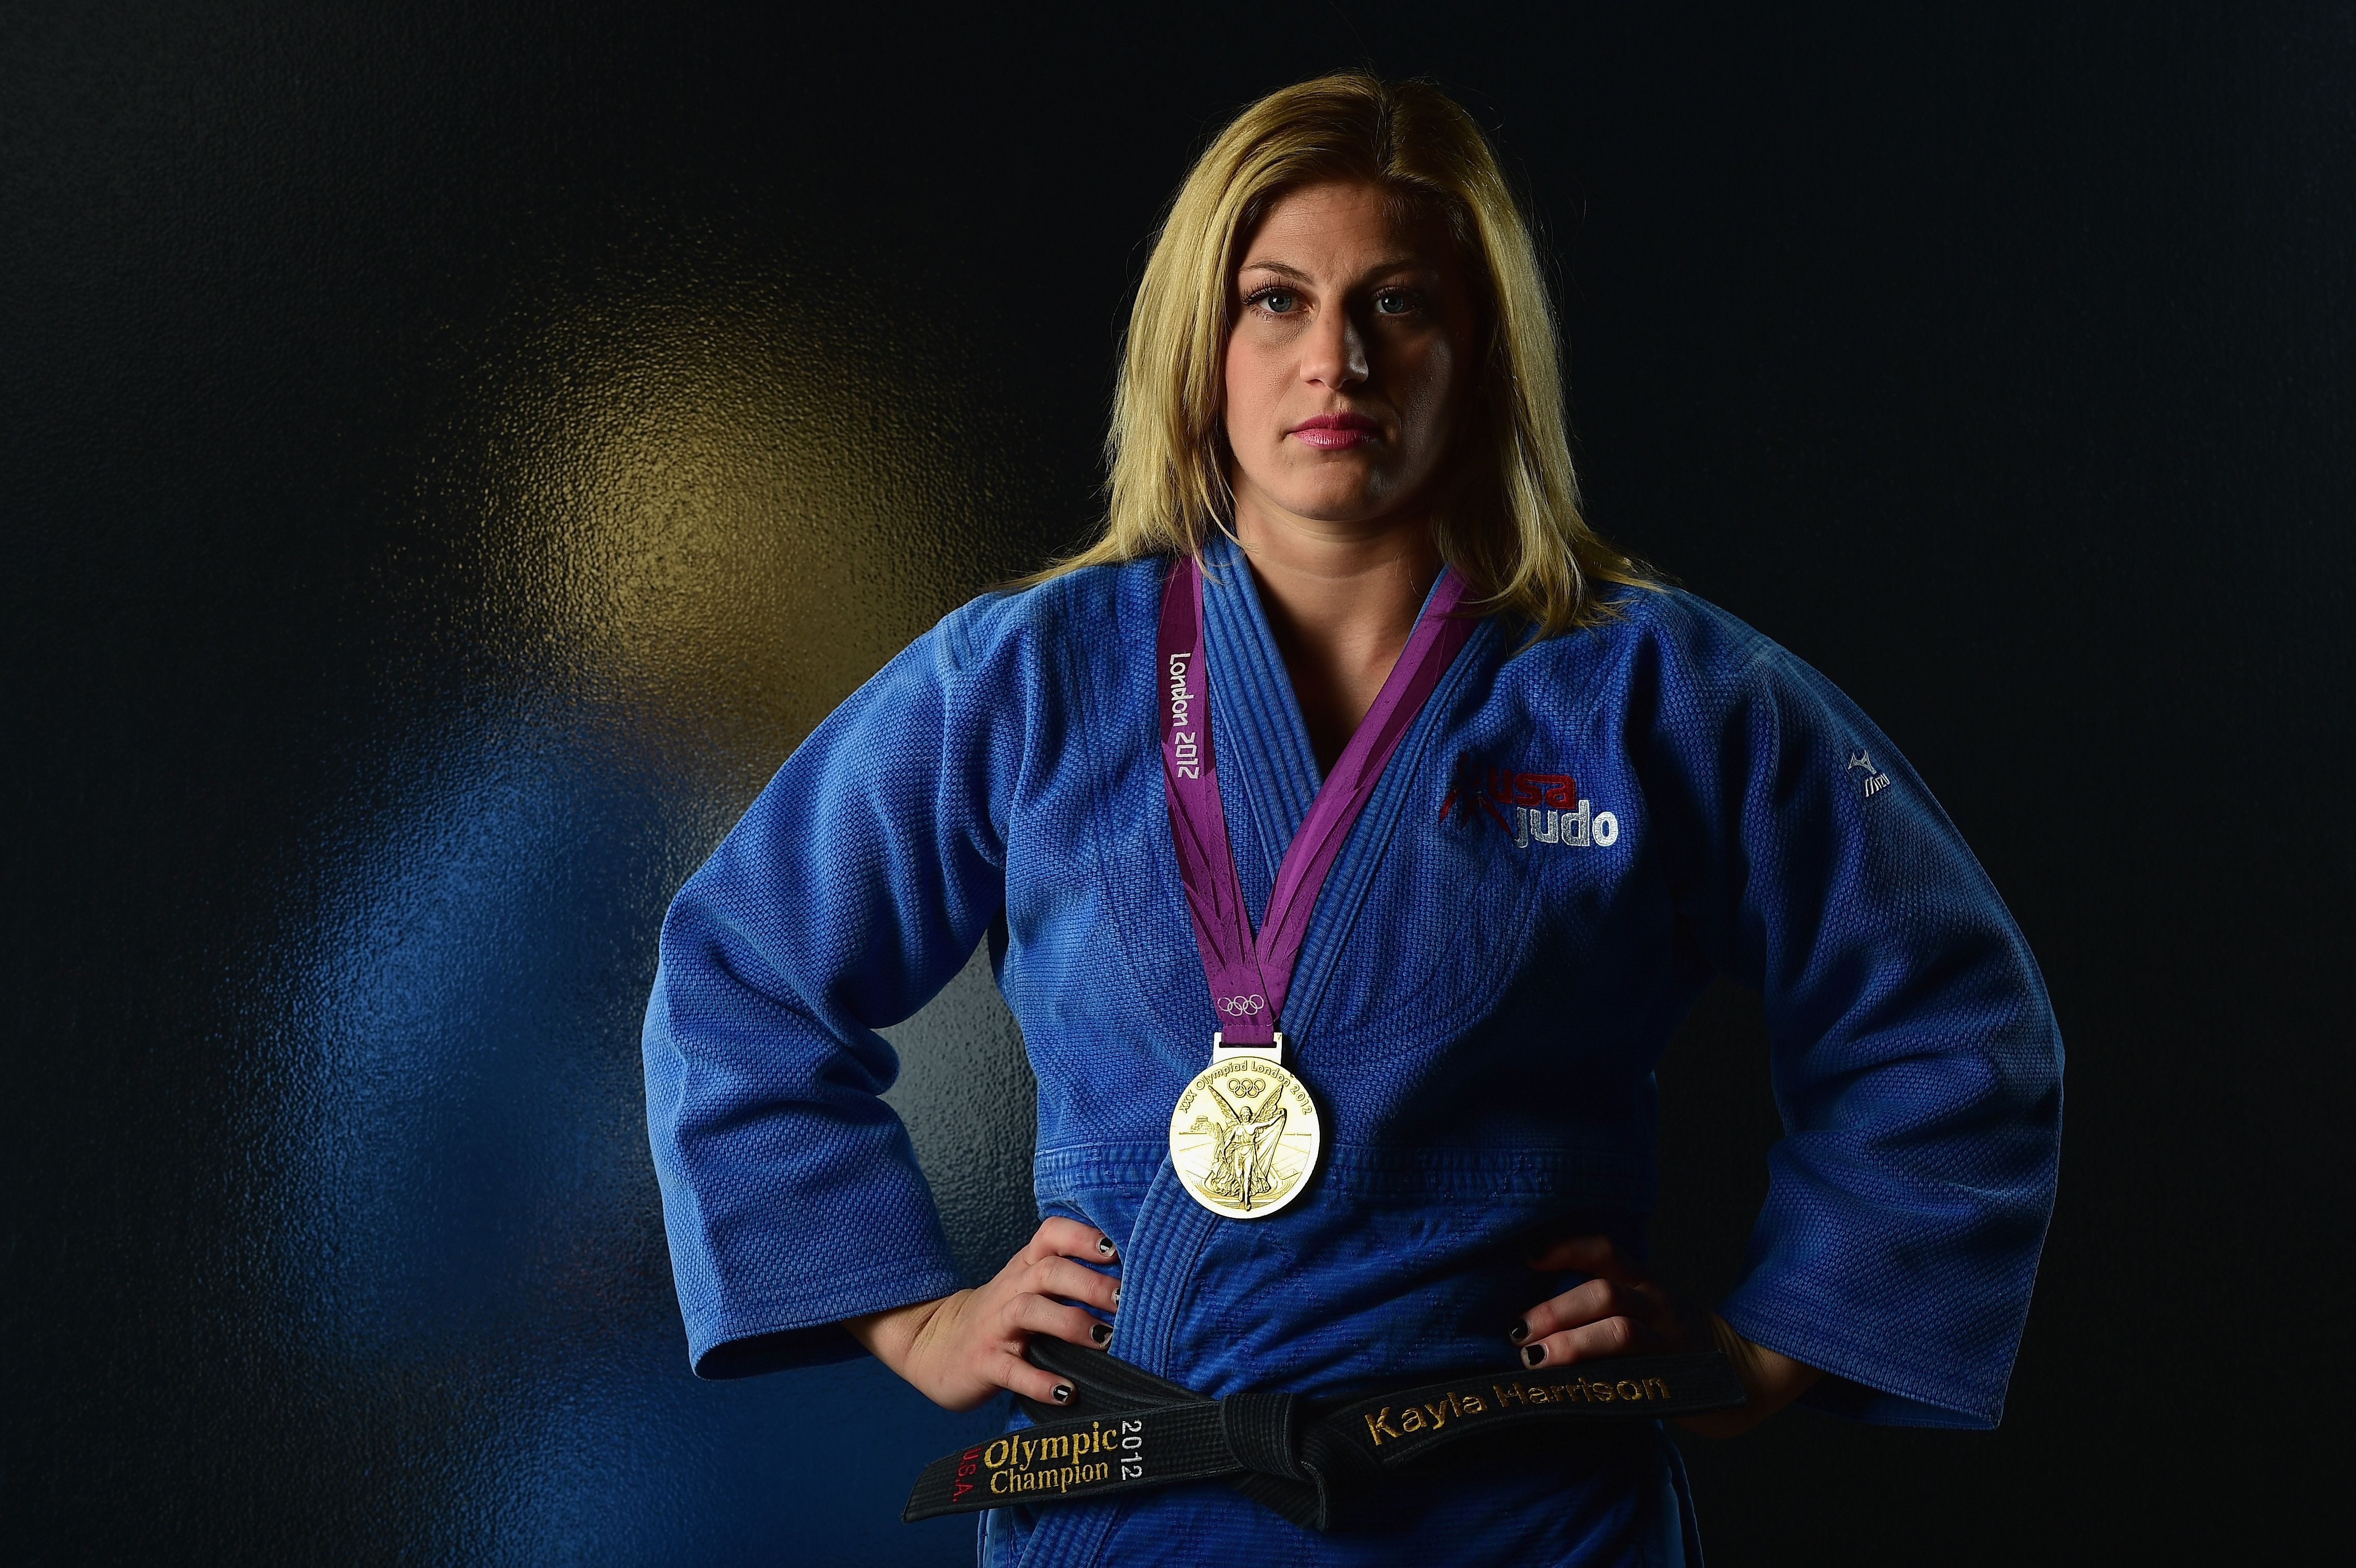 At the 2012 Games, Kayla Harrison's sole goal was to seal the gold. Now, she's fighting for so much more.